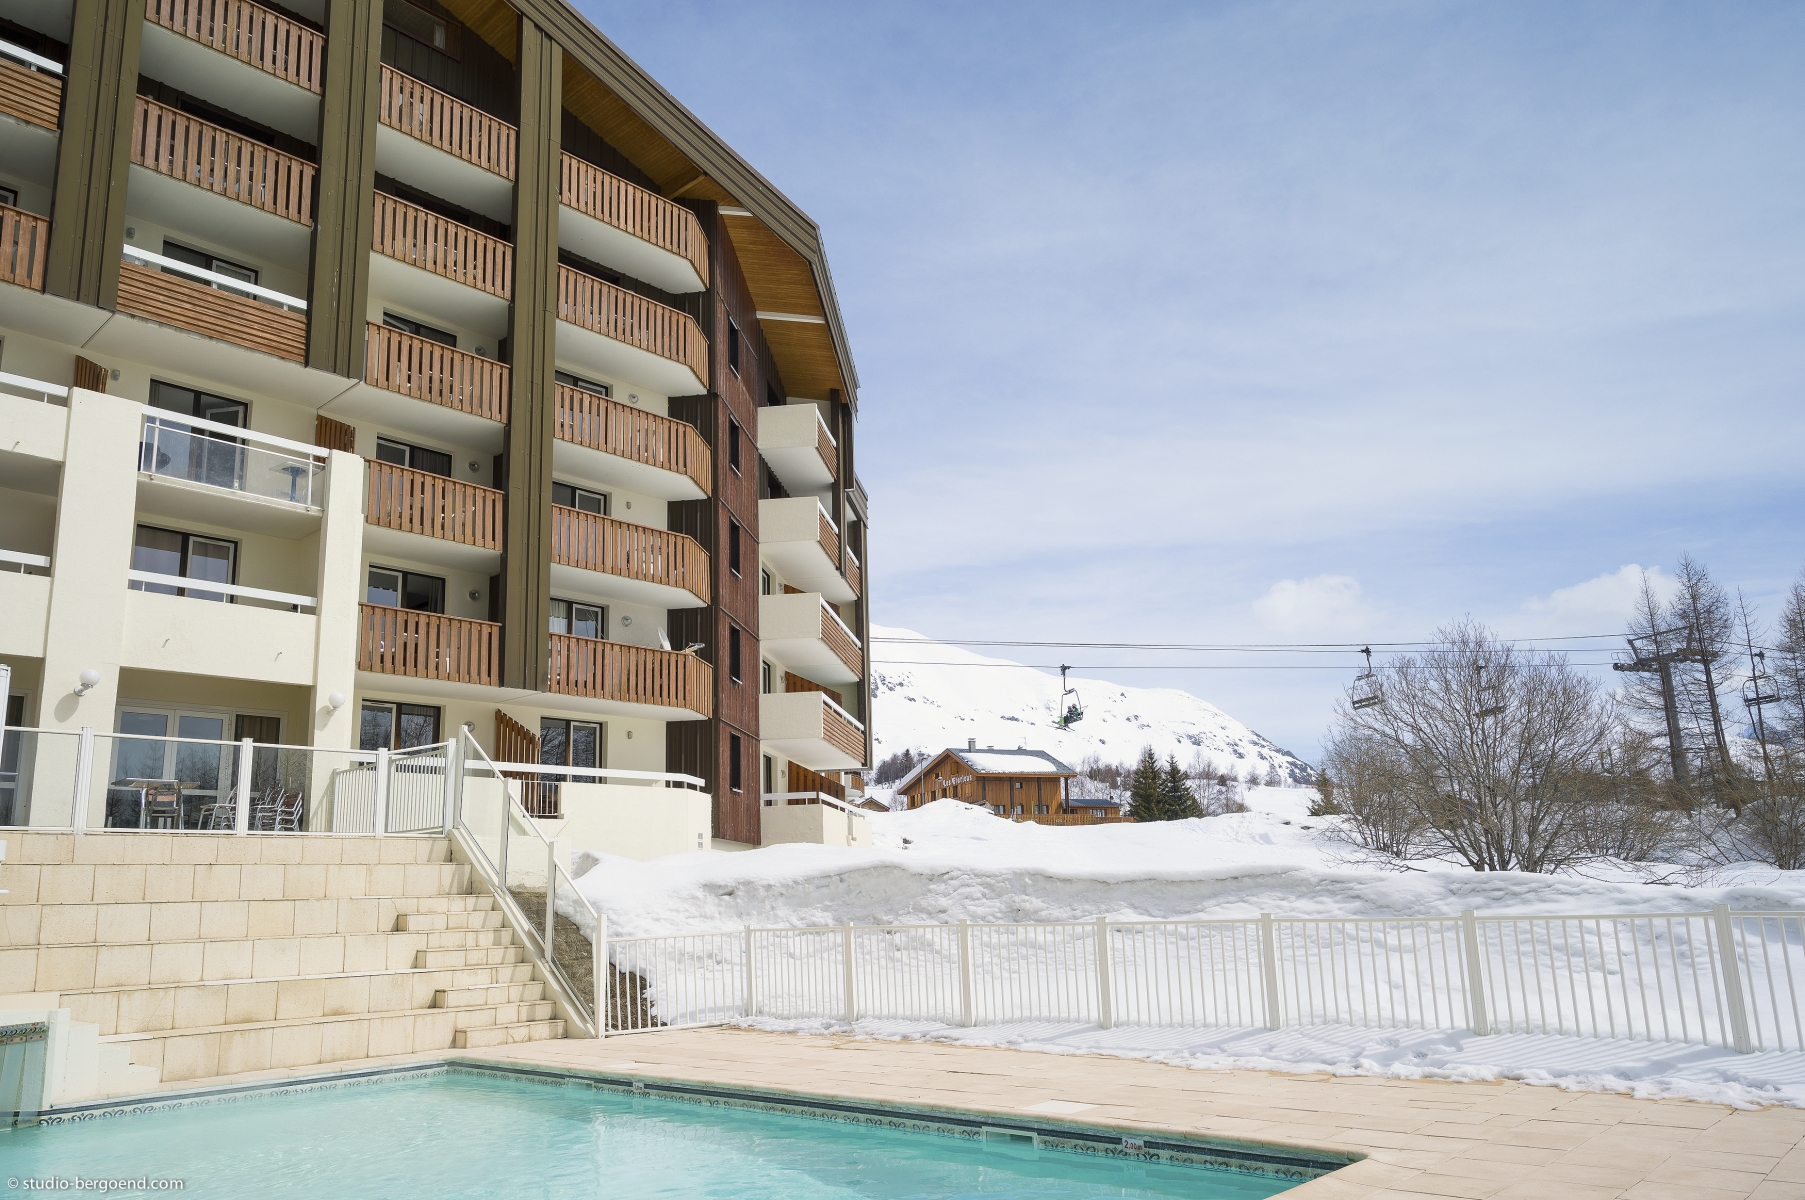 Pierre Vacances Residence Les Bergers In Huez The Best